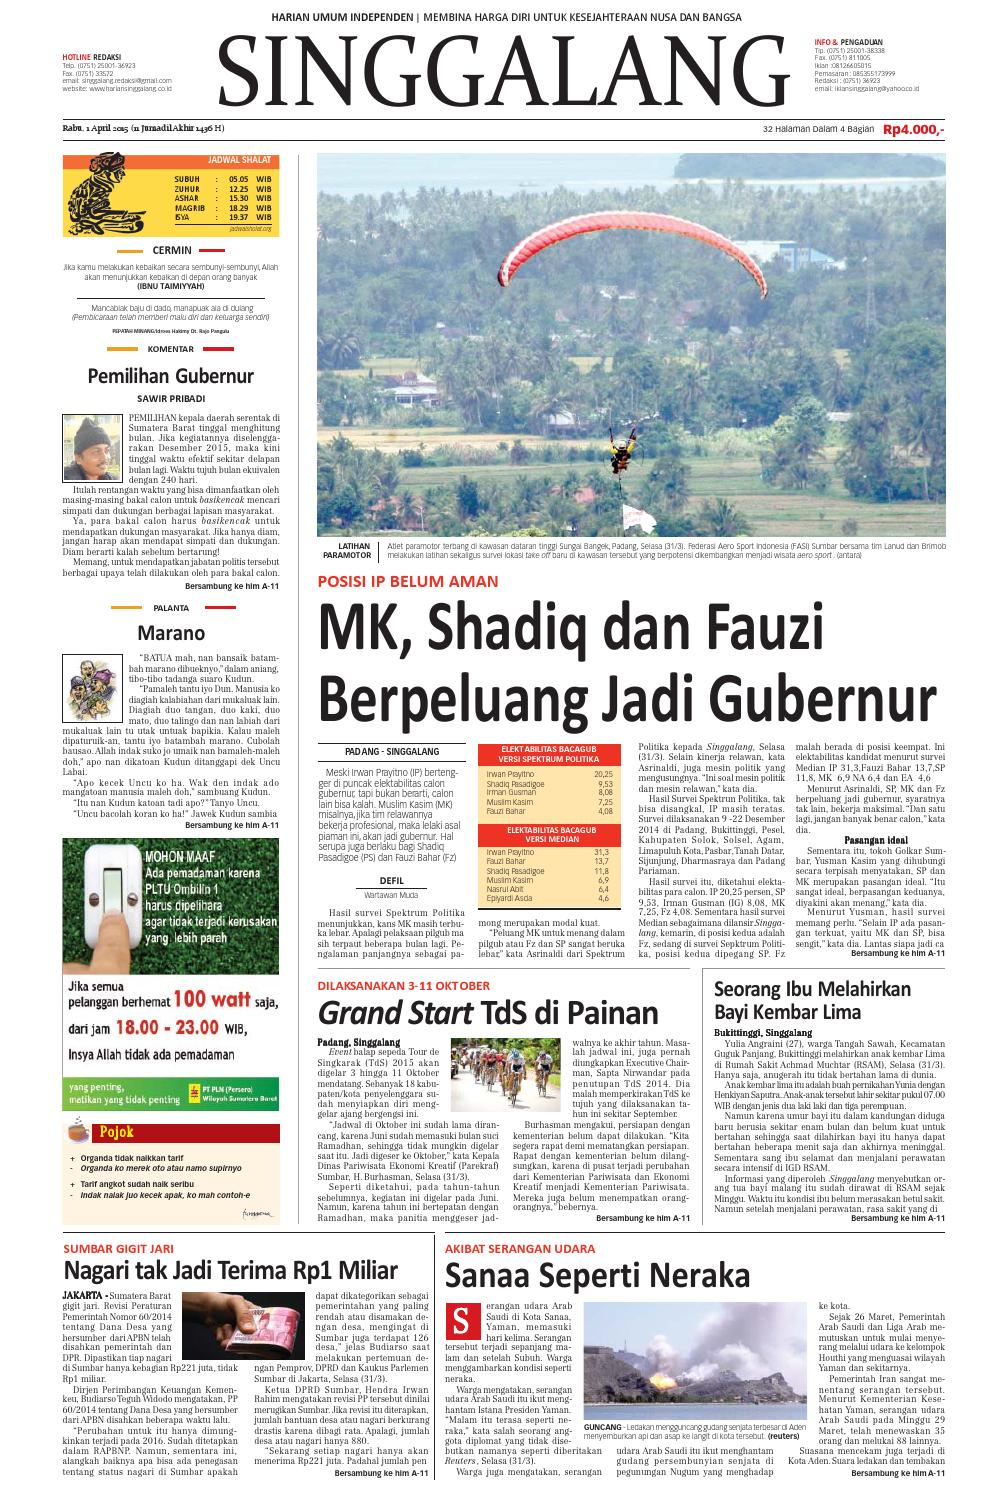 Rabu 1 April 2015 By Harian Singgalang Issuu